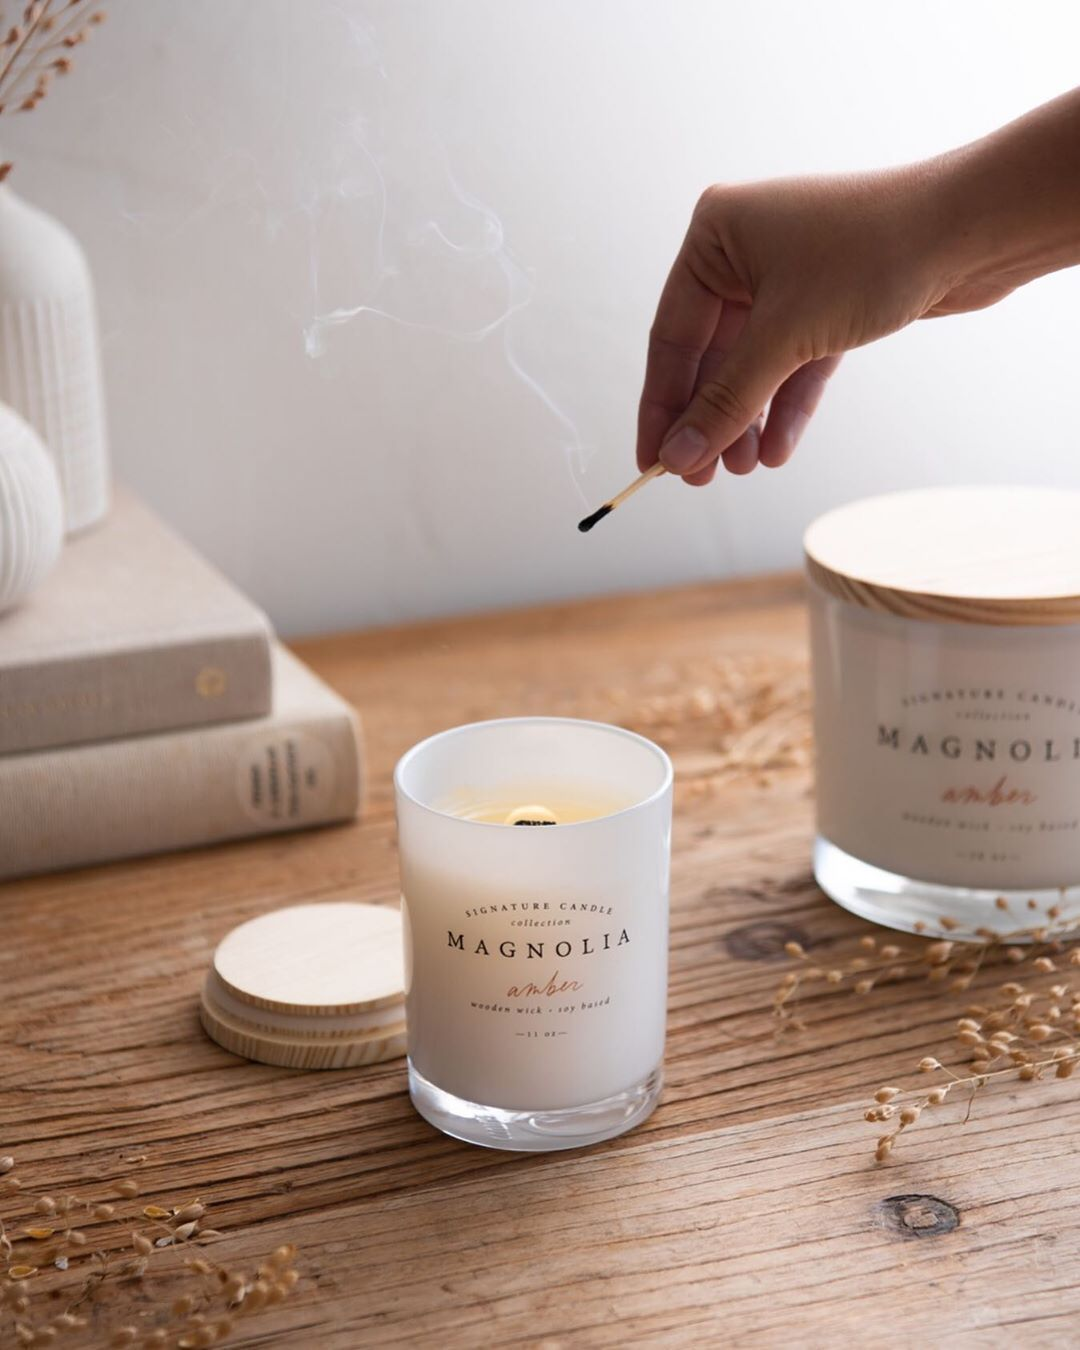 Joanna Gaines Launched a New Magnolia Candle, And We're Ready for Fall